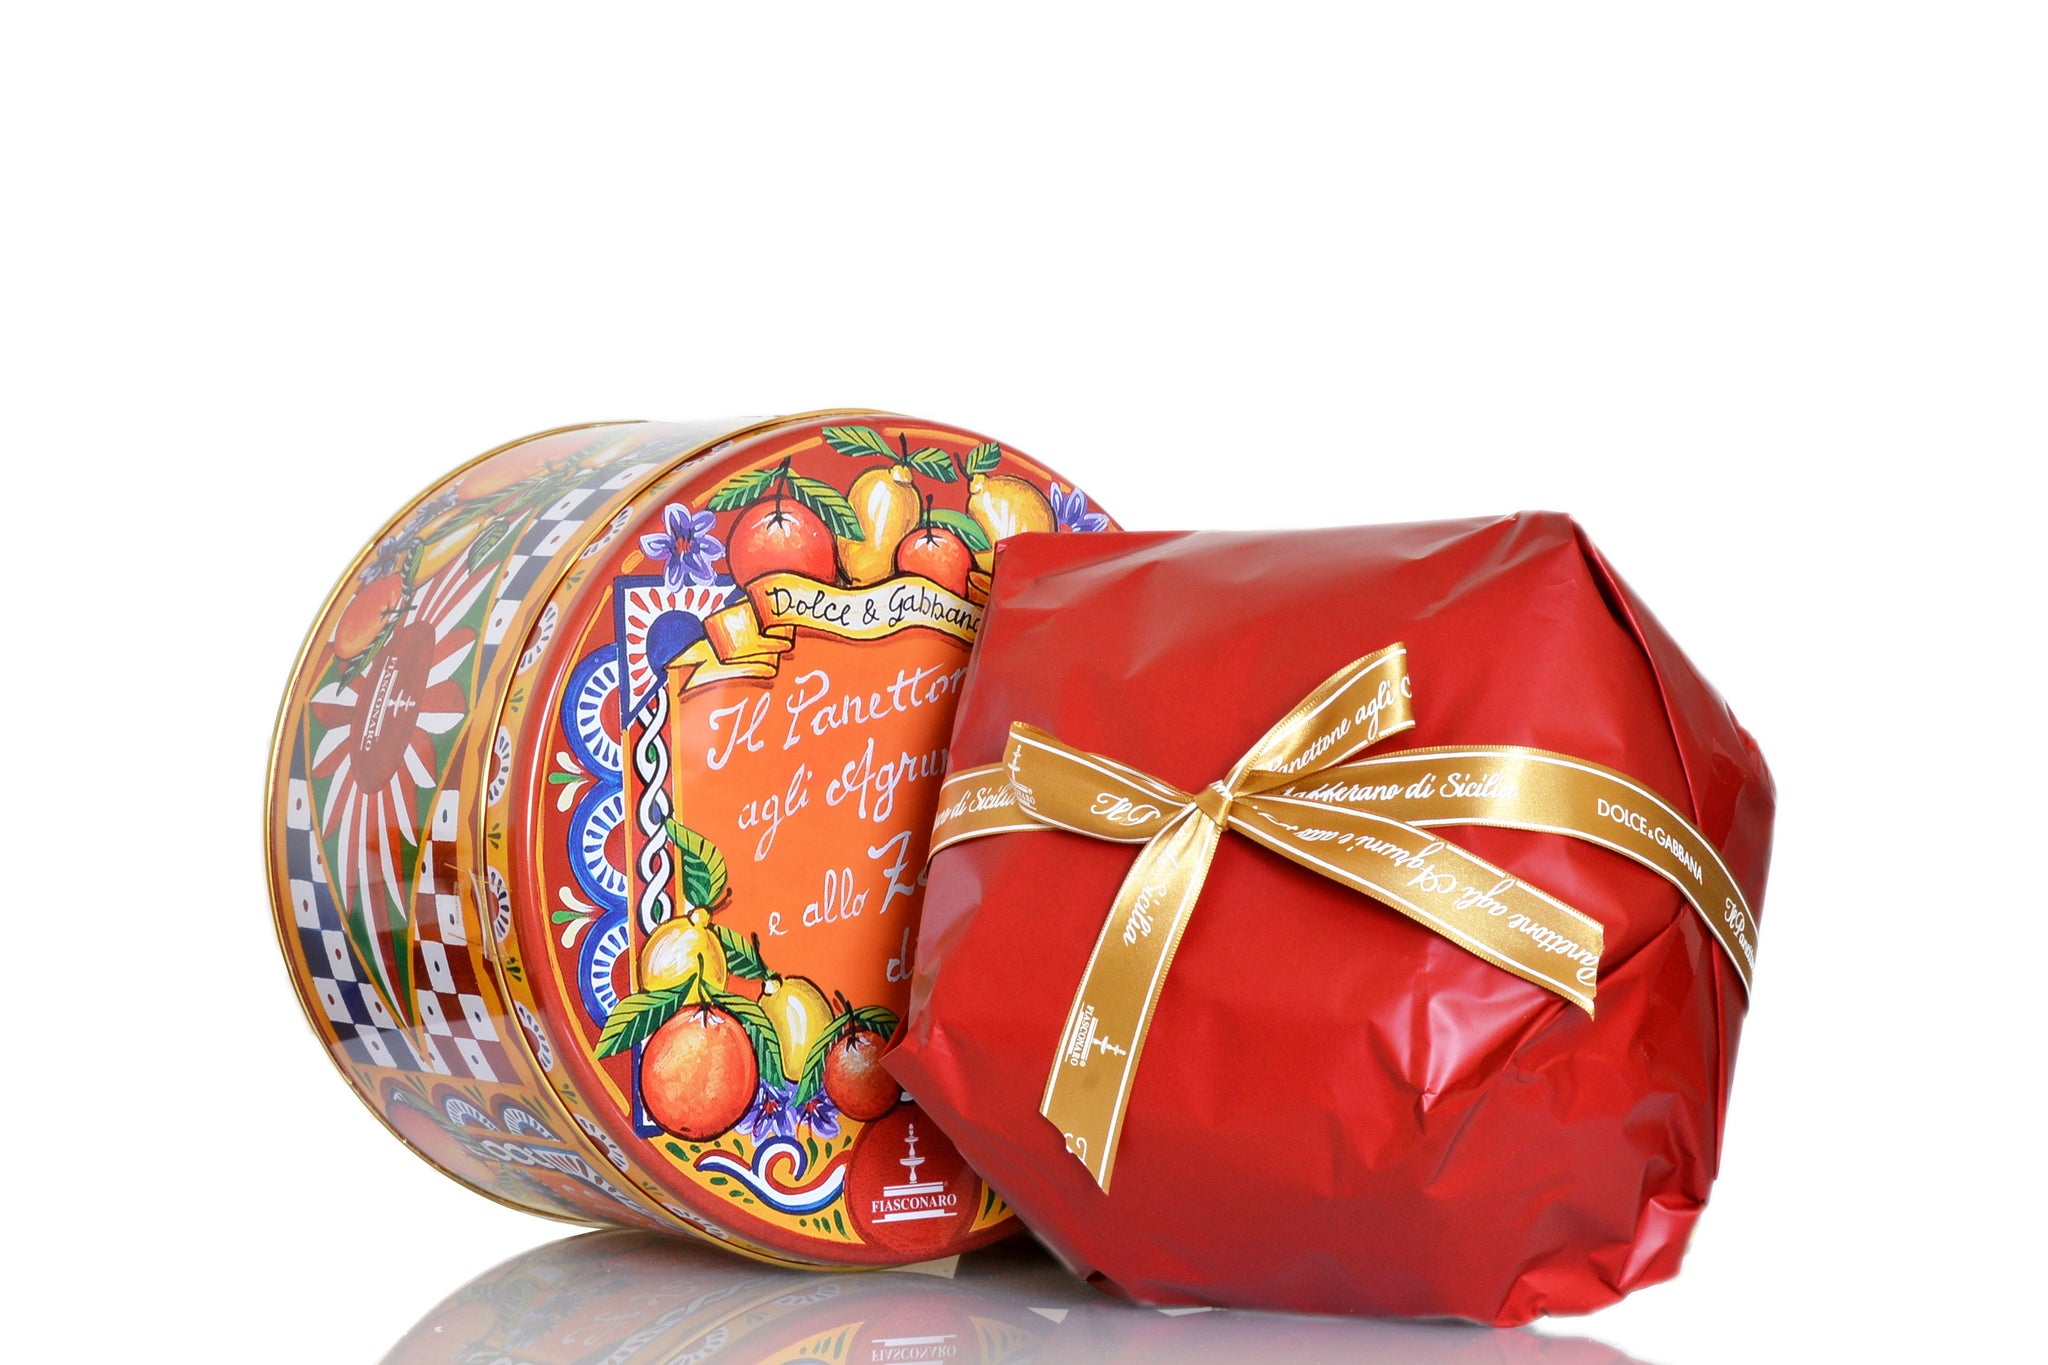 Dolce & Gabbana Panettone made by Fiasconaro | Shop at the Red Beetle